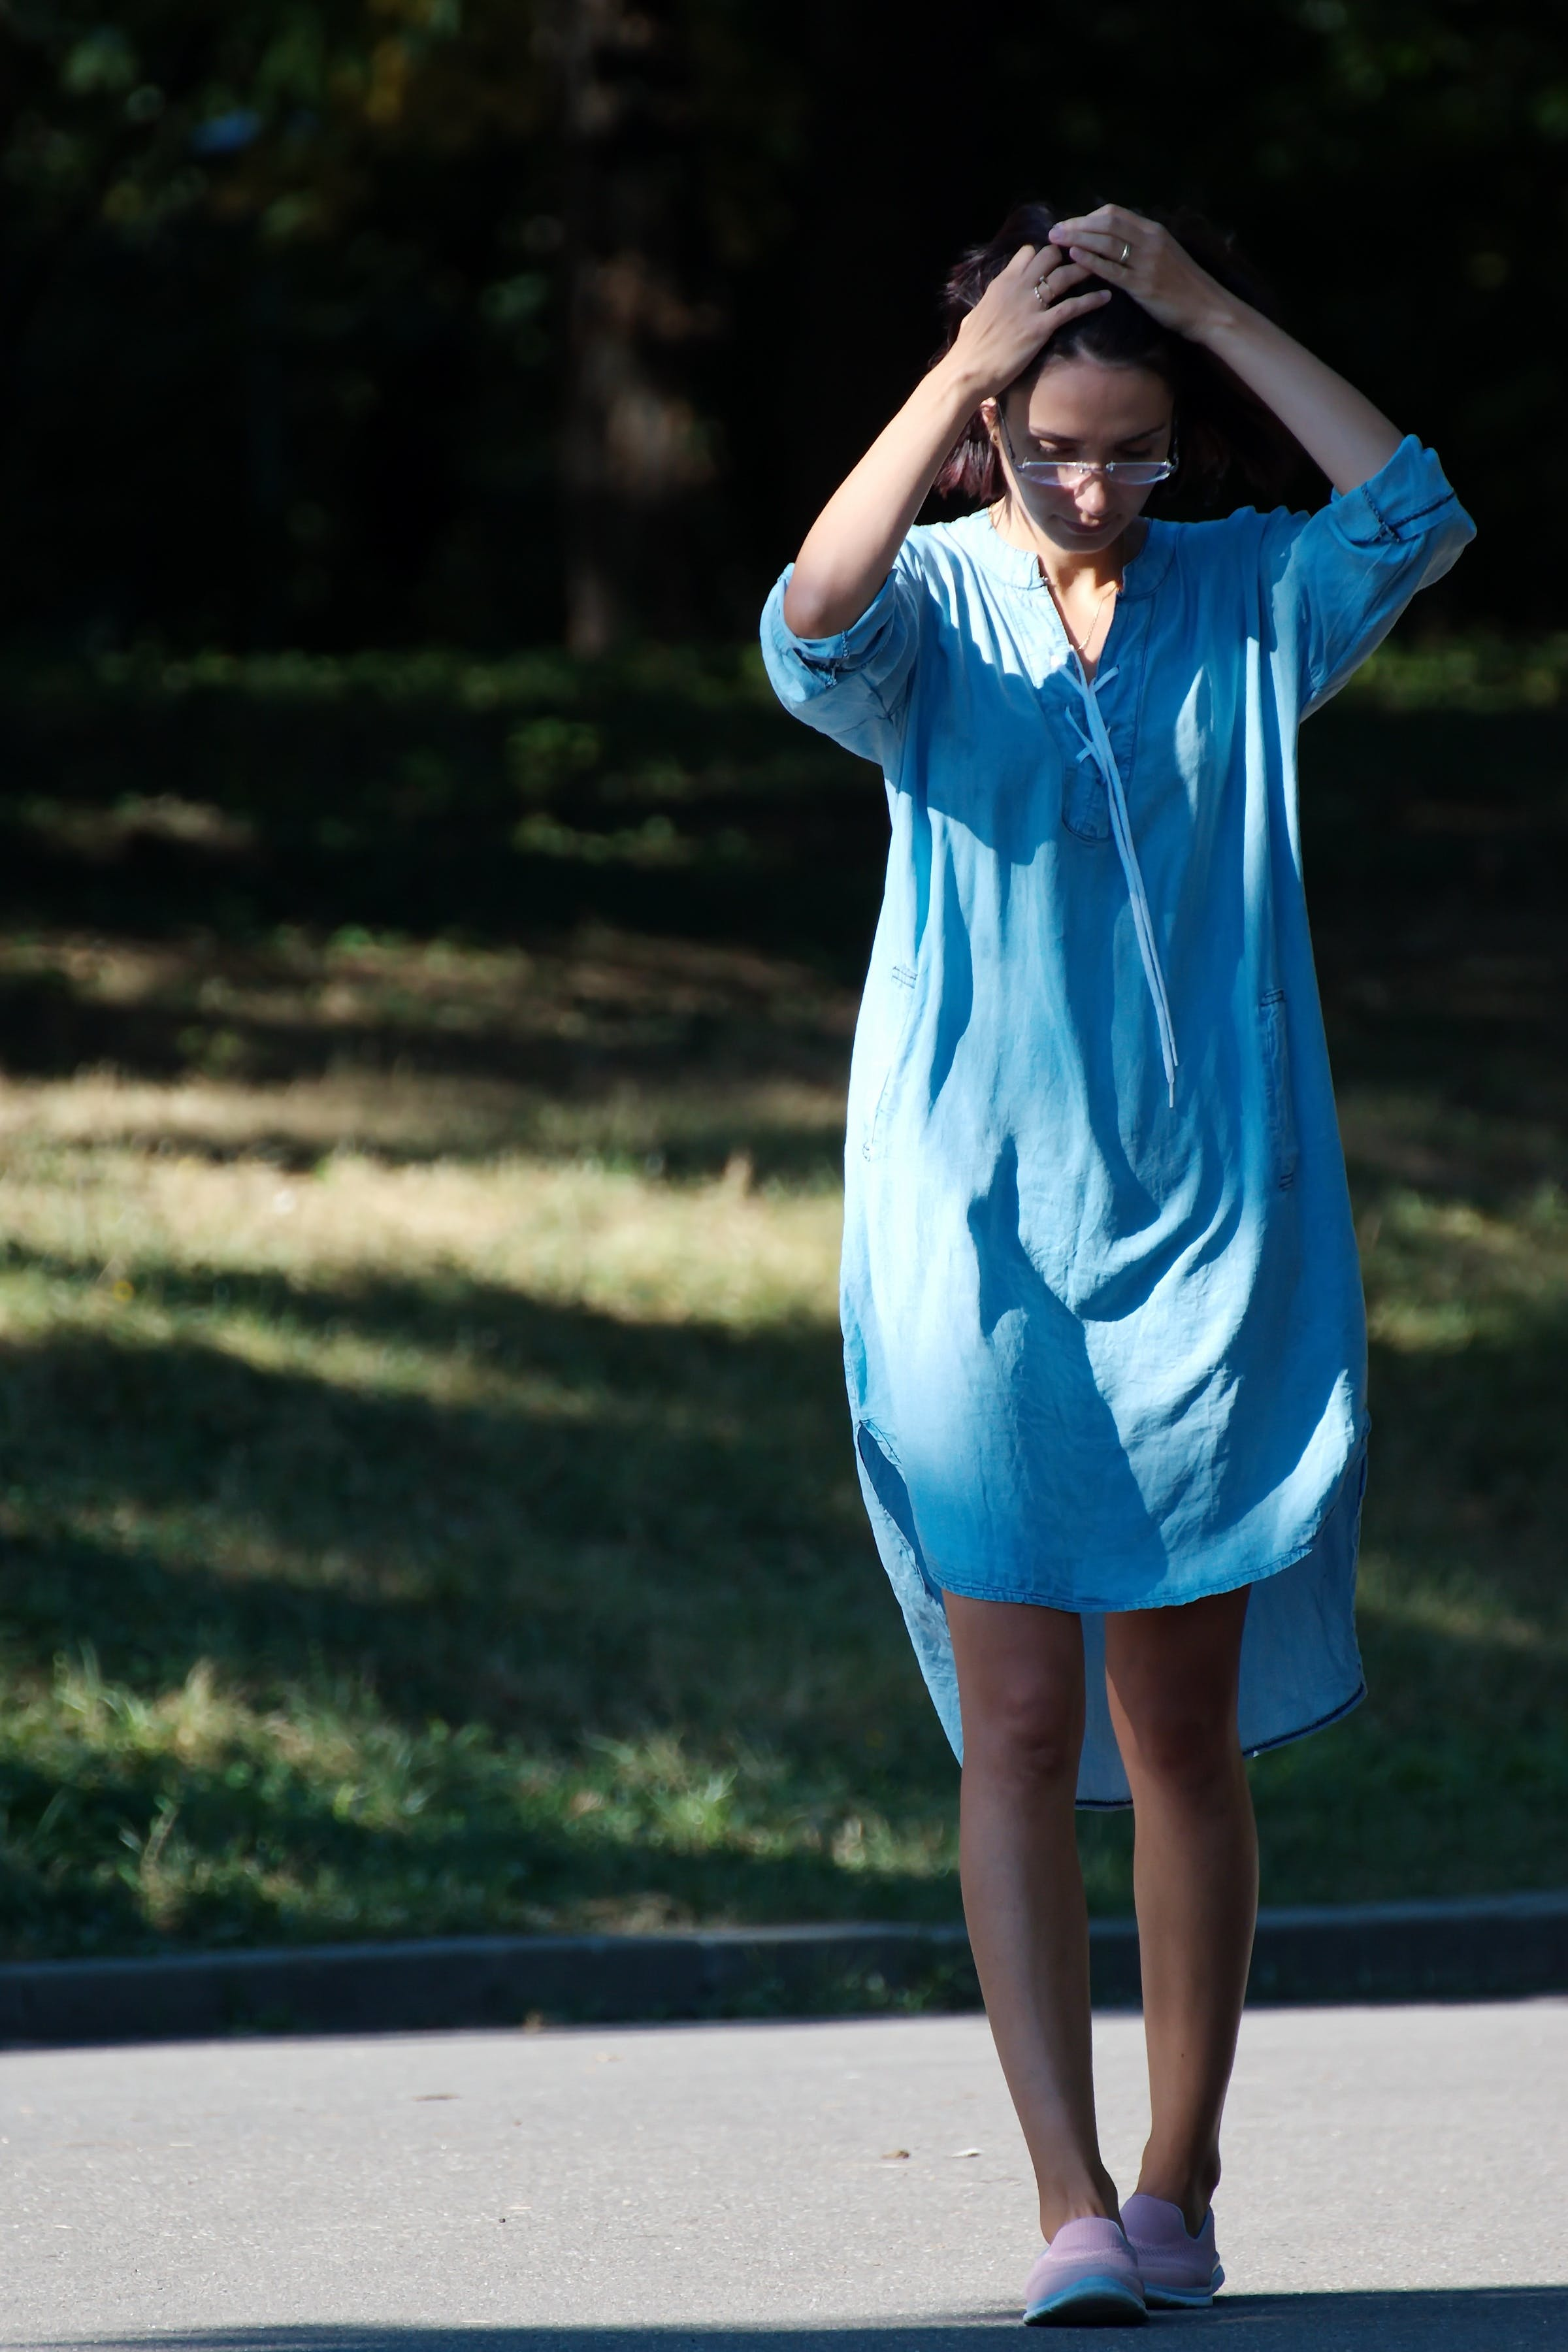 Woman in Blue Tunic Holding Her Hair